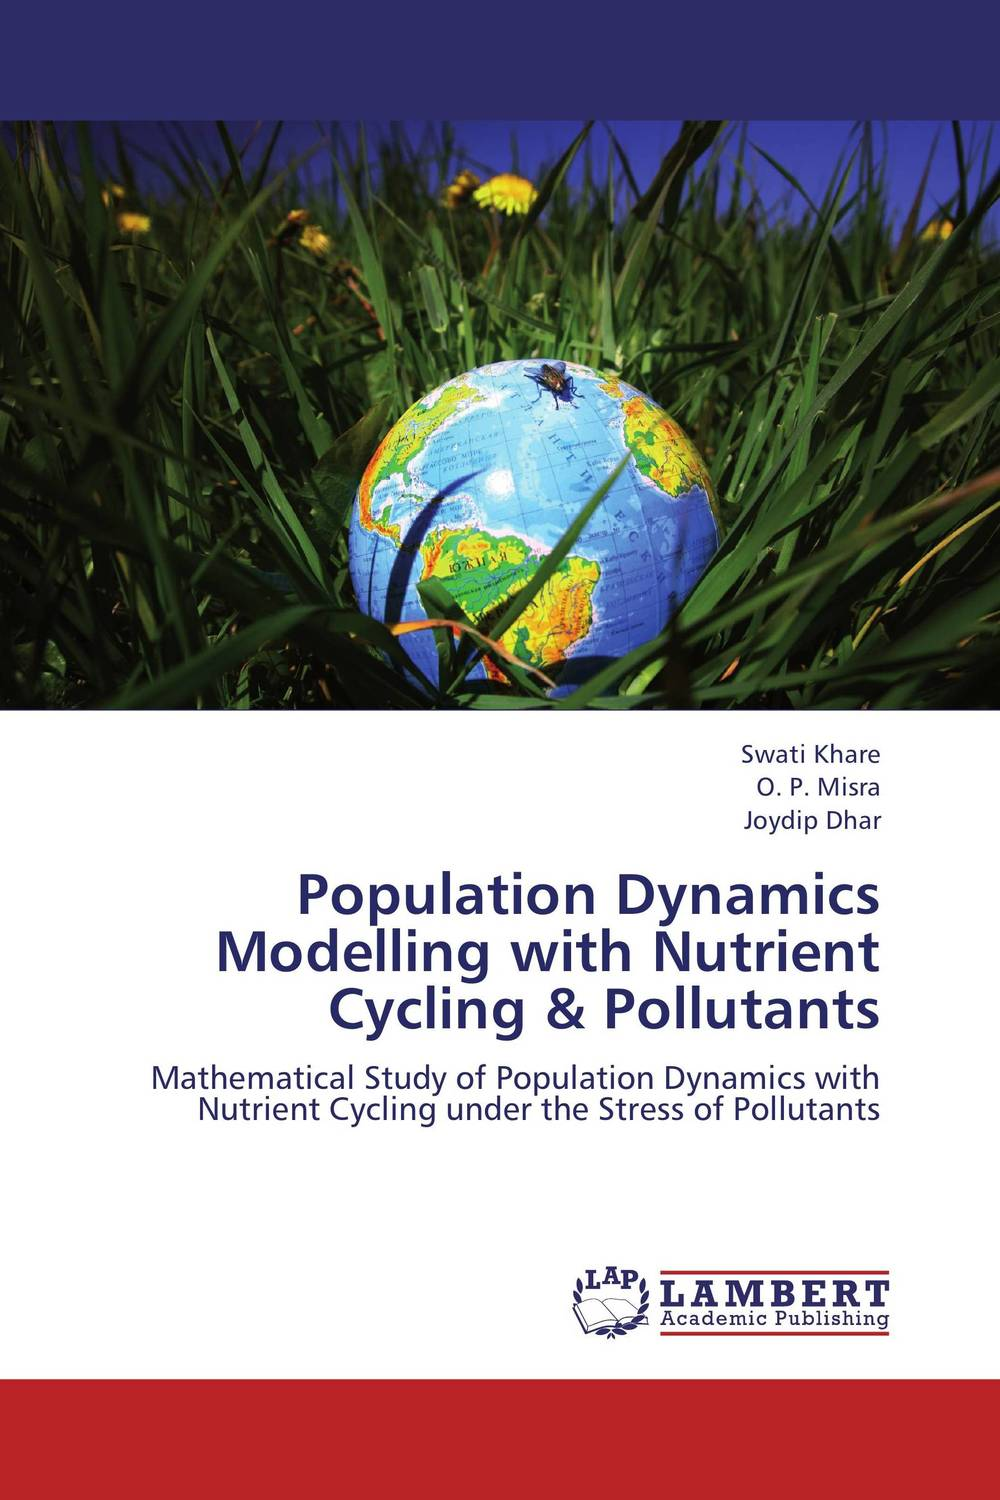 цена на Population Dynamics Modelling with Nutrient Cycling & Pollutants